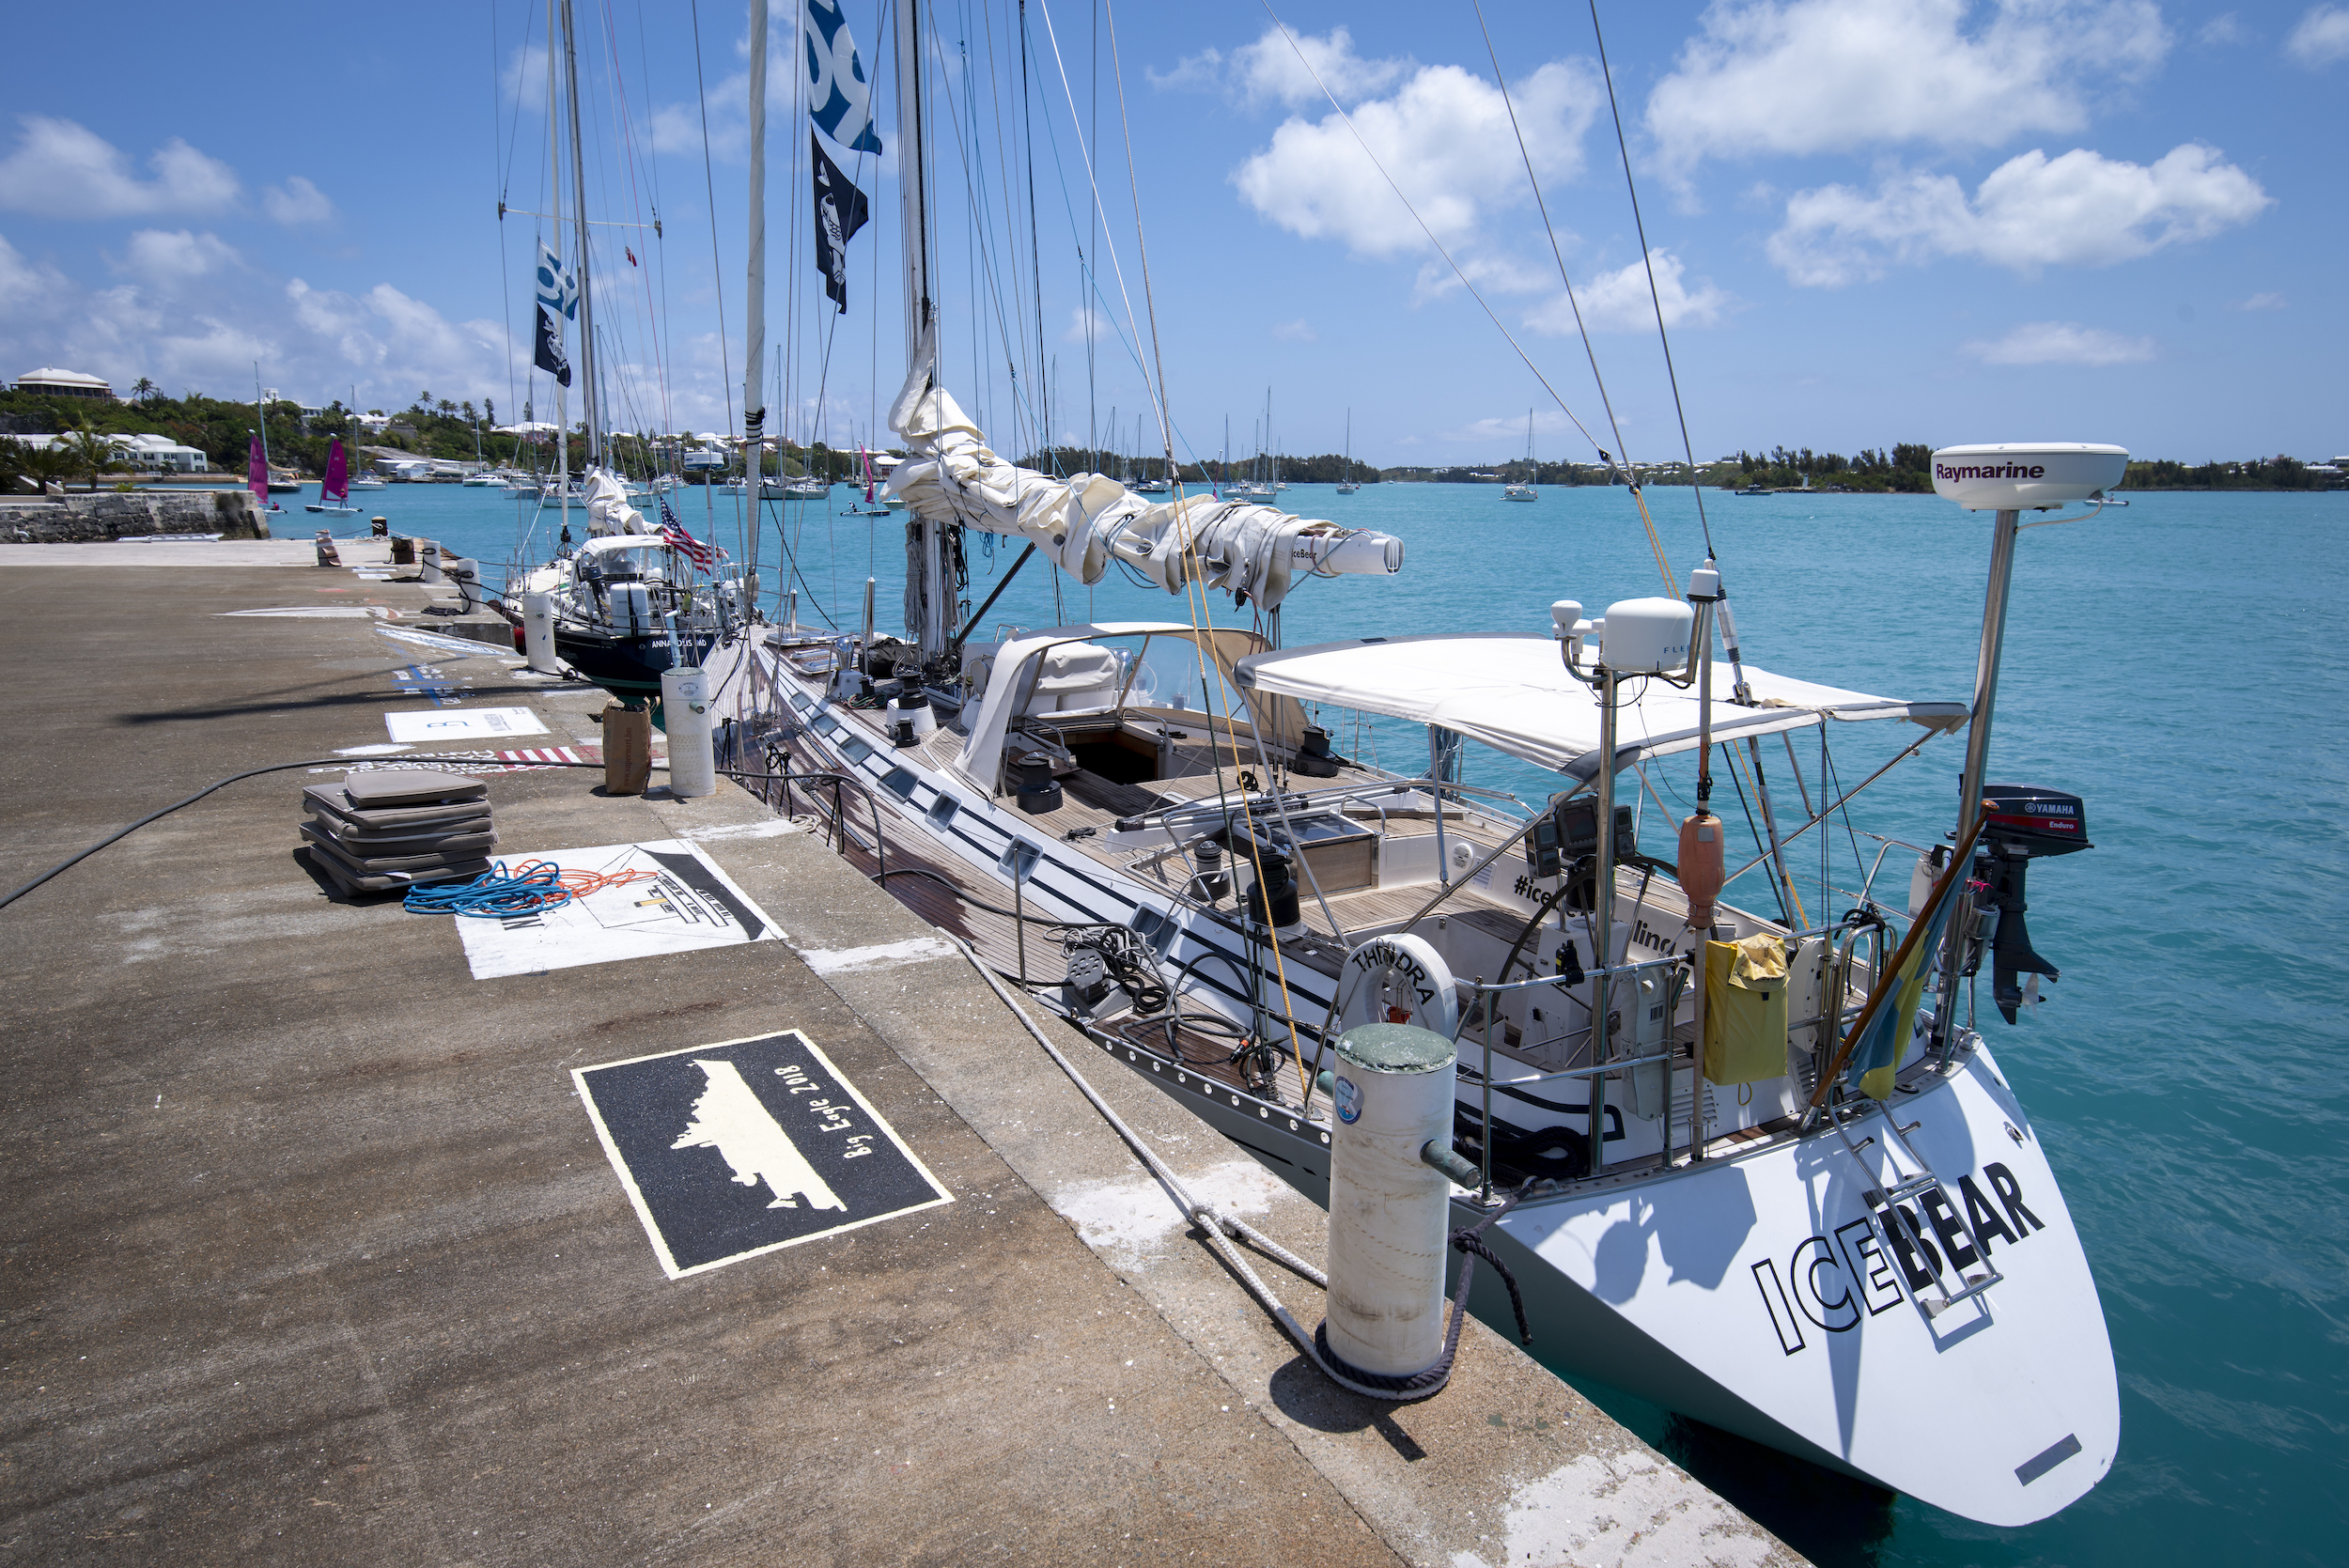 ISBJORN & ICEBEAR together at the dock in Bermuda, t-minus 2 hours til departure. We SHOULD have filled up with diesel on ICEBEAR!